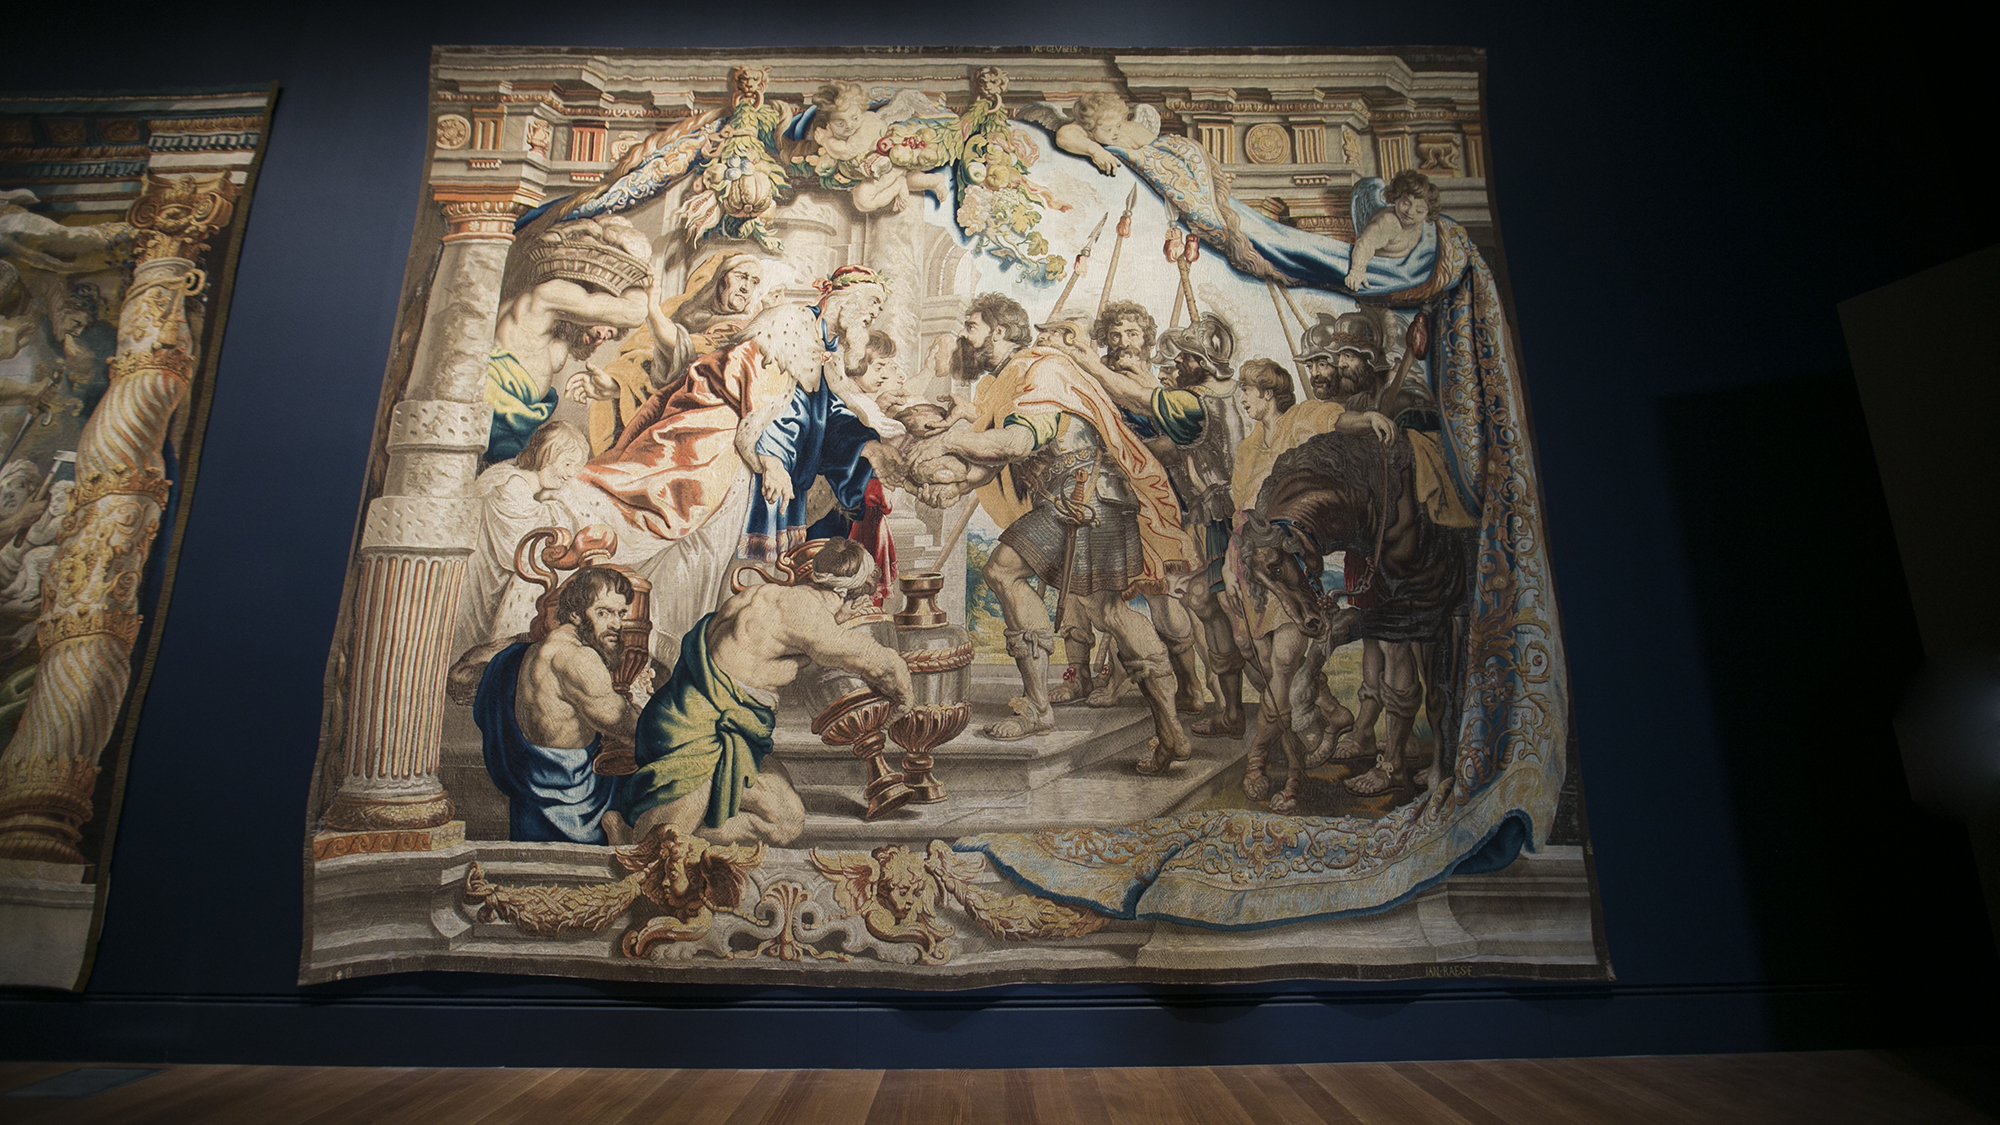 After it's hoisted, preps removes the hooks, ropes, and secures the tapestry to the wall. Beautiful!